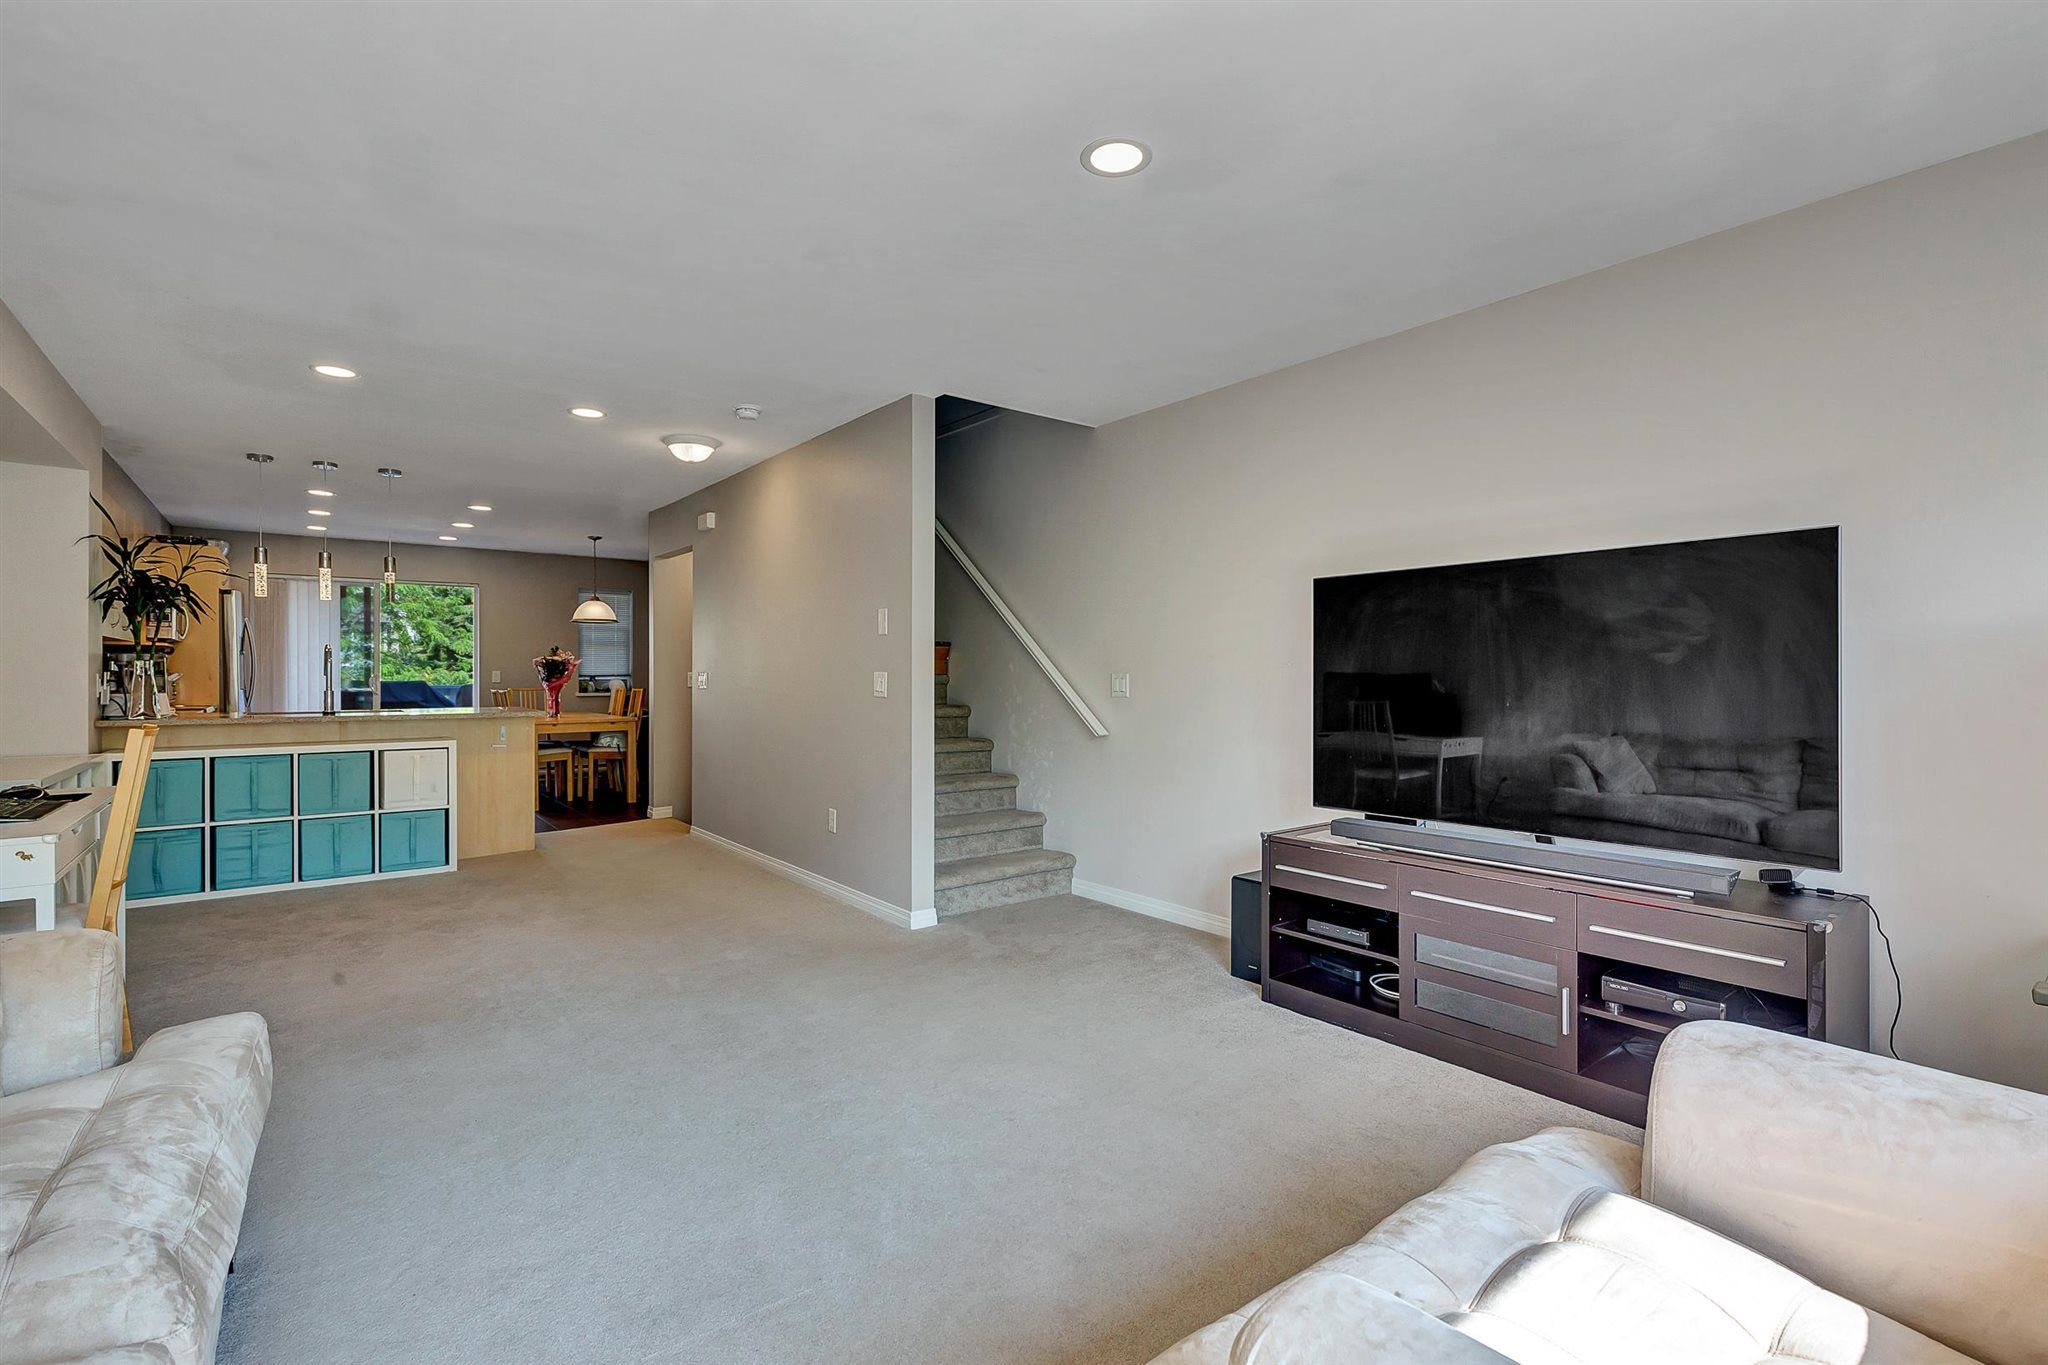 """Photo 9: Photos: 9 15871 85 Avenue in Surrey: Fleetwood Tynehead Townhouse for sale in """"Huckleberry"""" : MLS®# R2606668"""